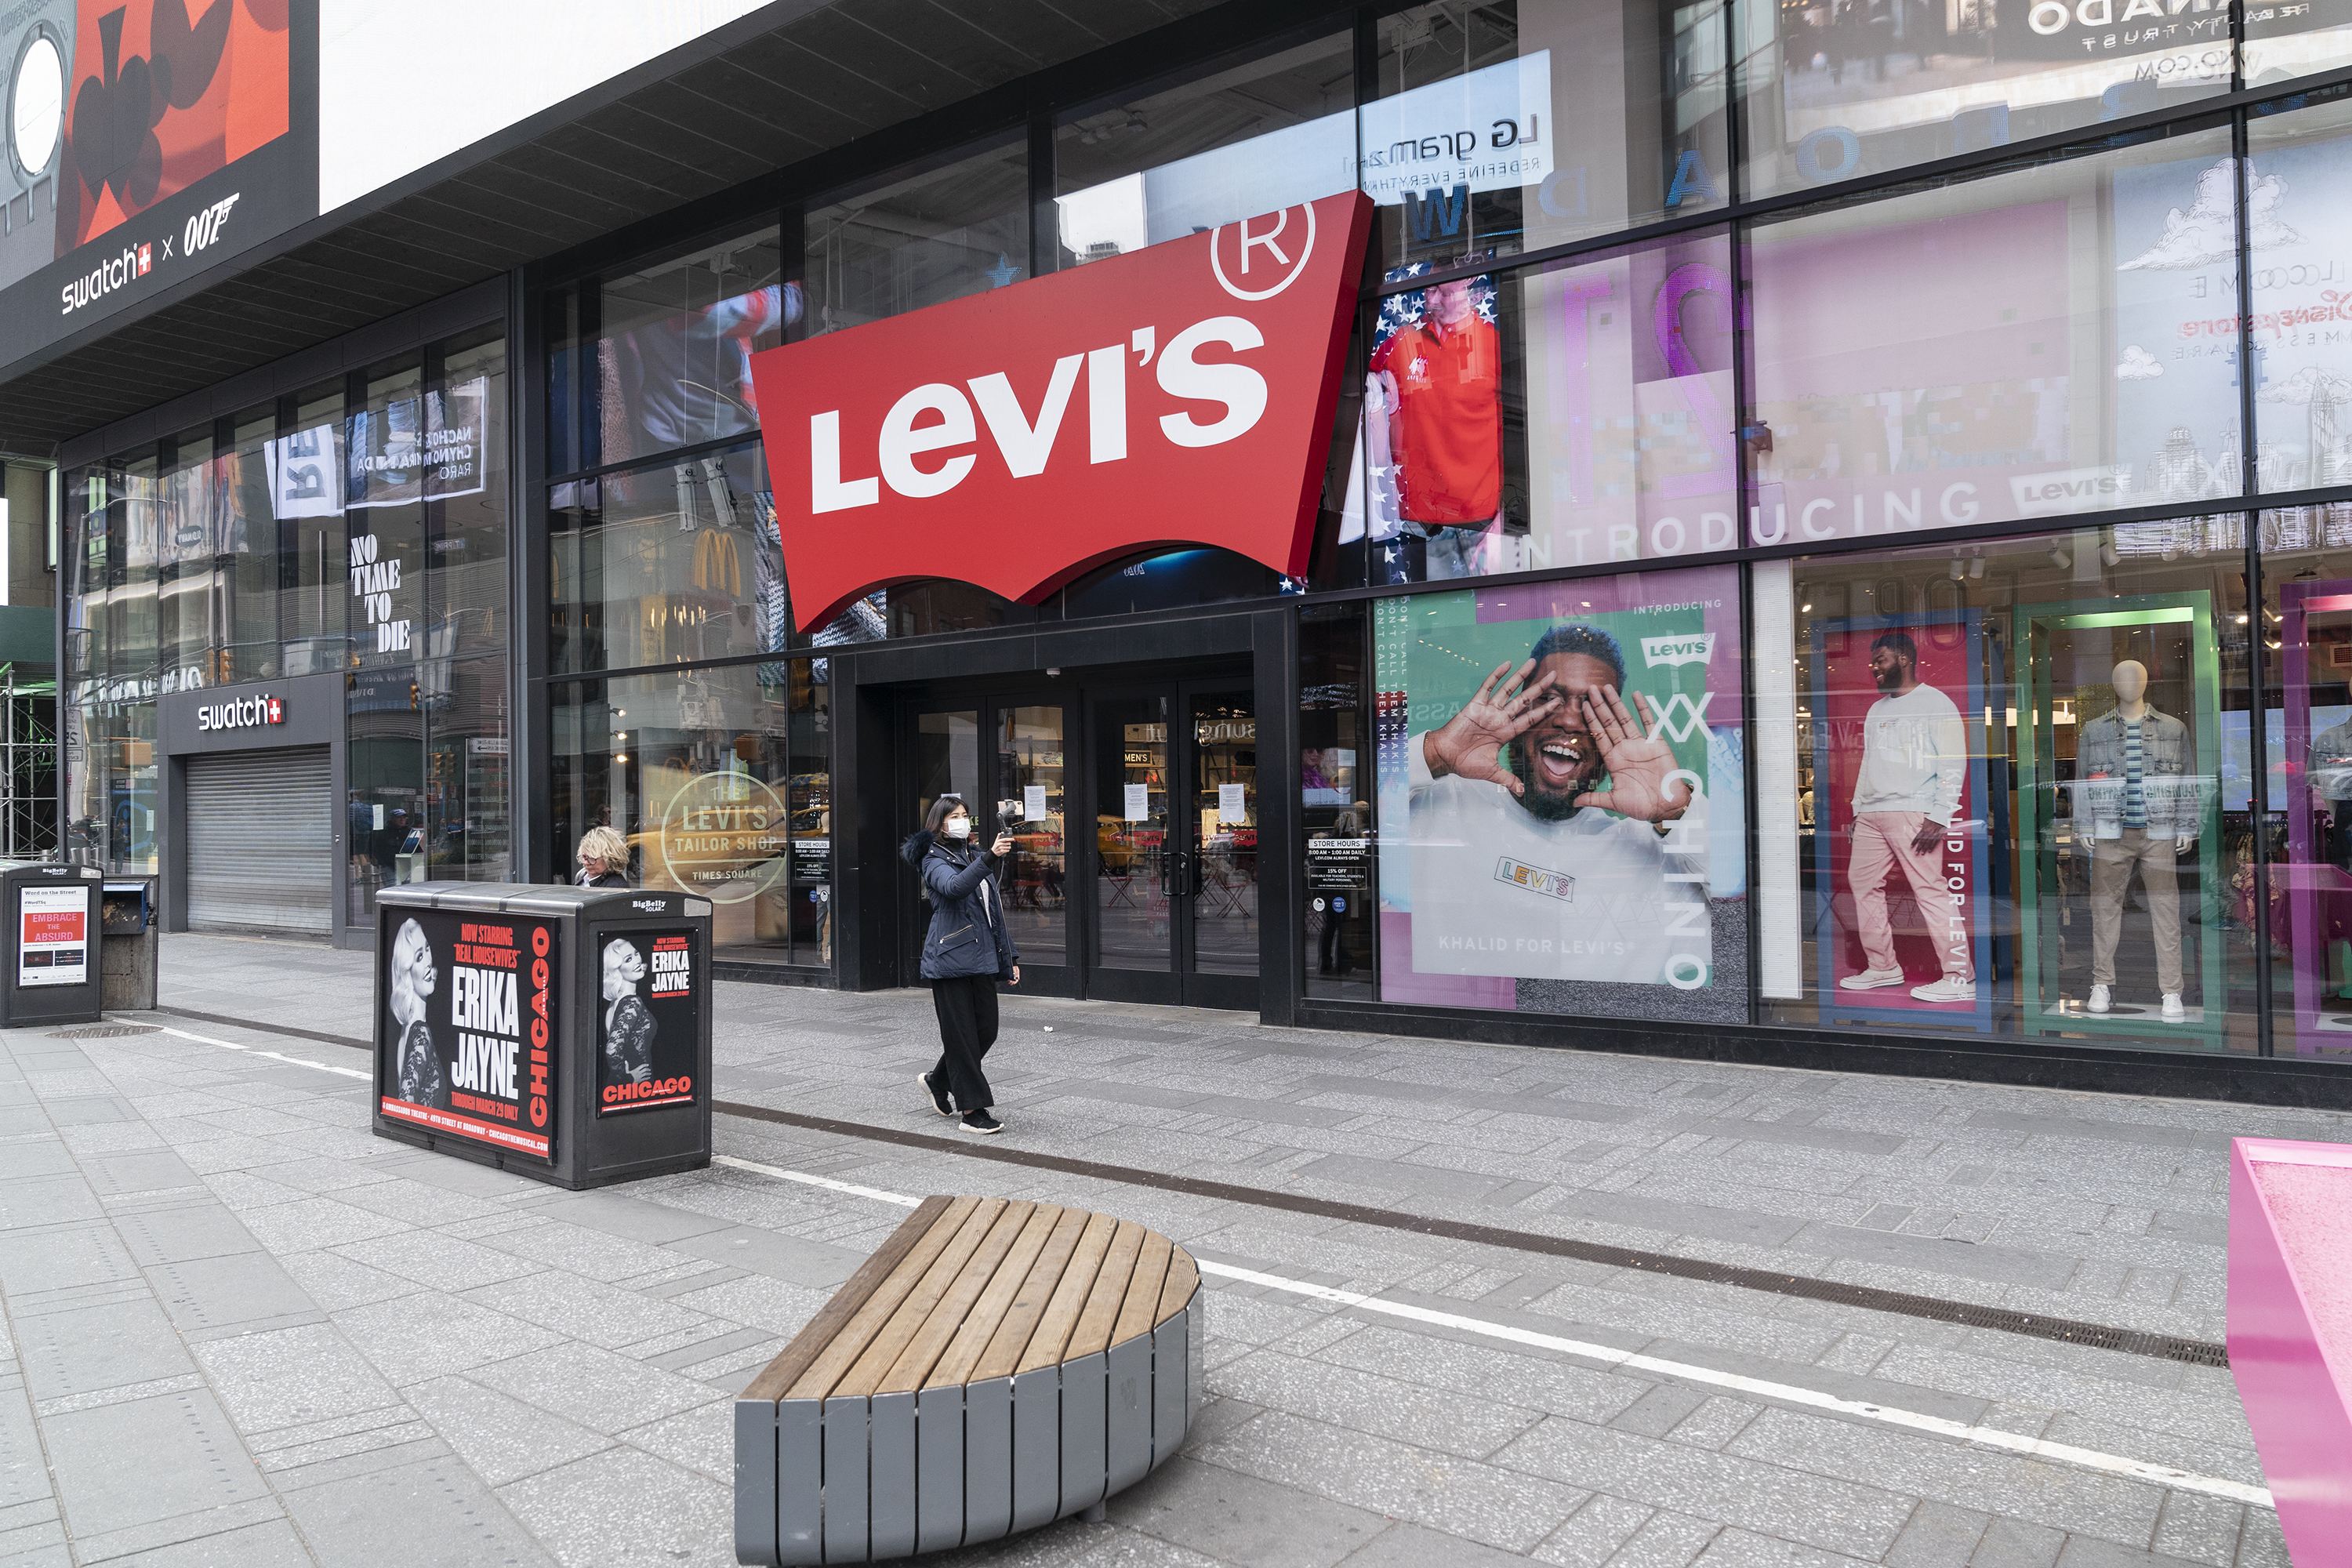 Levi's focuses on keeping customers' attention online while stores are closed